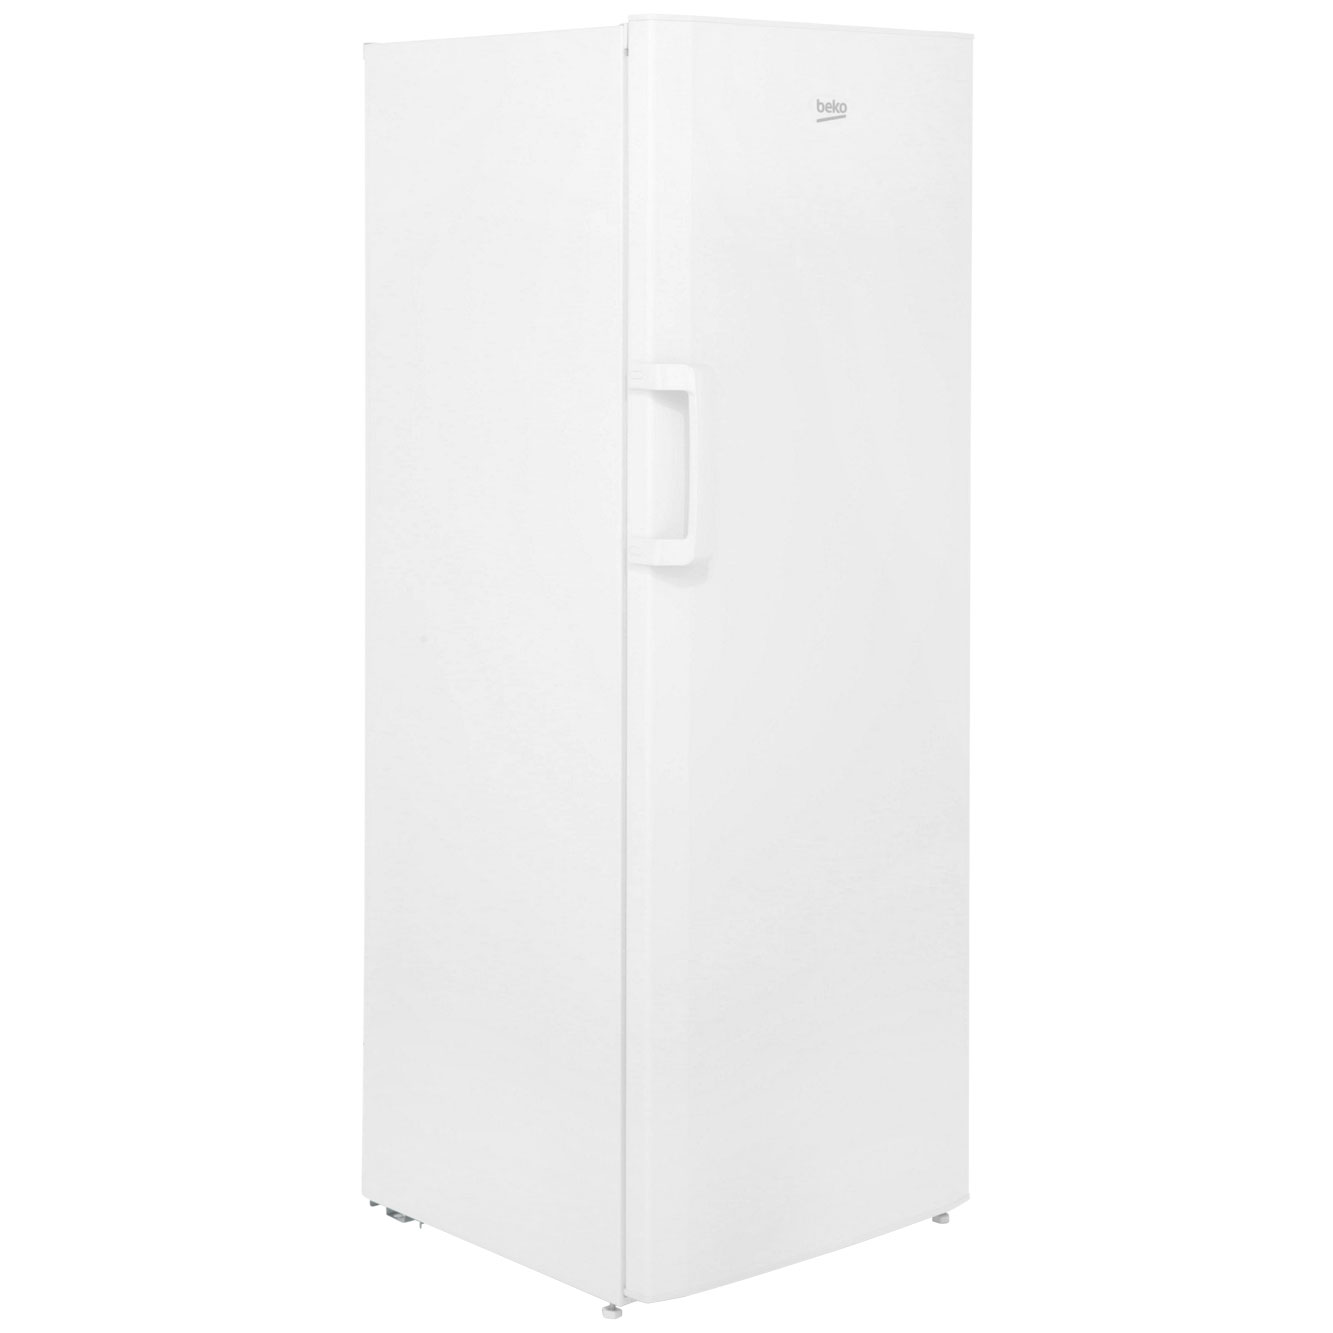 Beko TFFC671W Upright Freezer - White